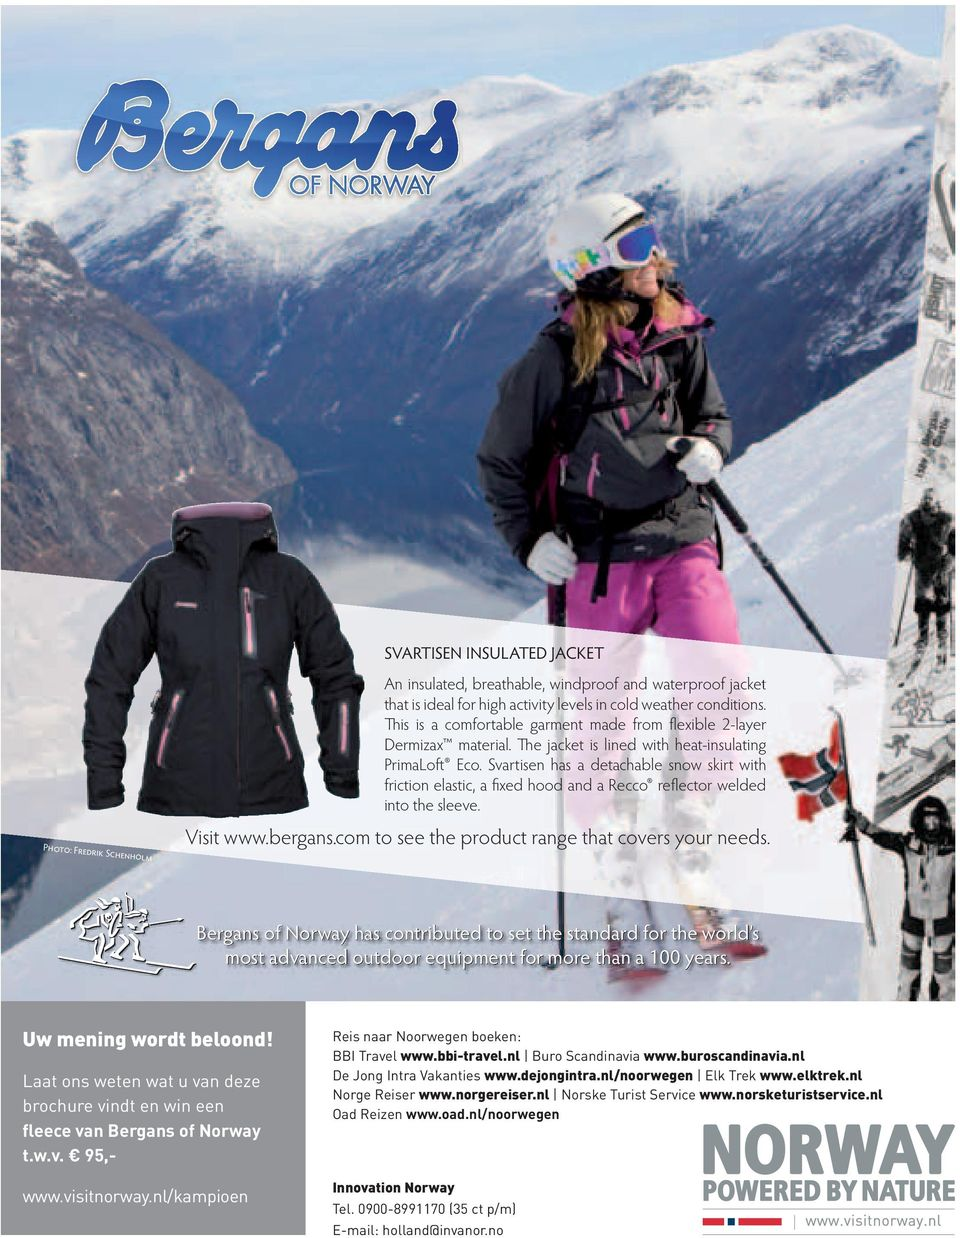 Svartisen has a detachable snow skirt with friction elastic, a fixed hood and a Recco reflector welded into the sleeve. Visit www.bergans.com to see the product range that covers your needs.